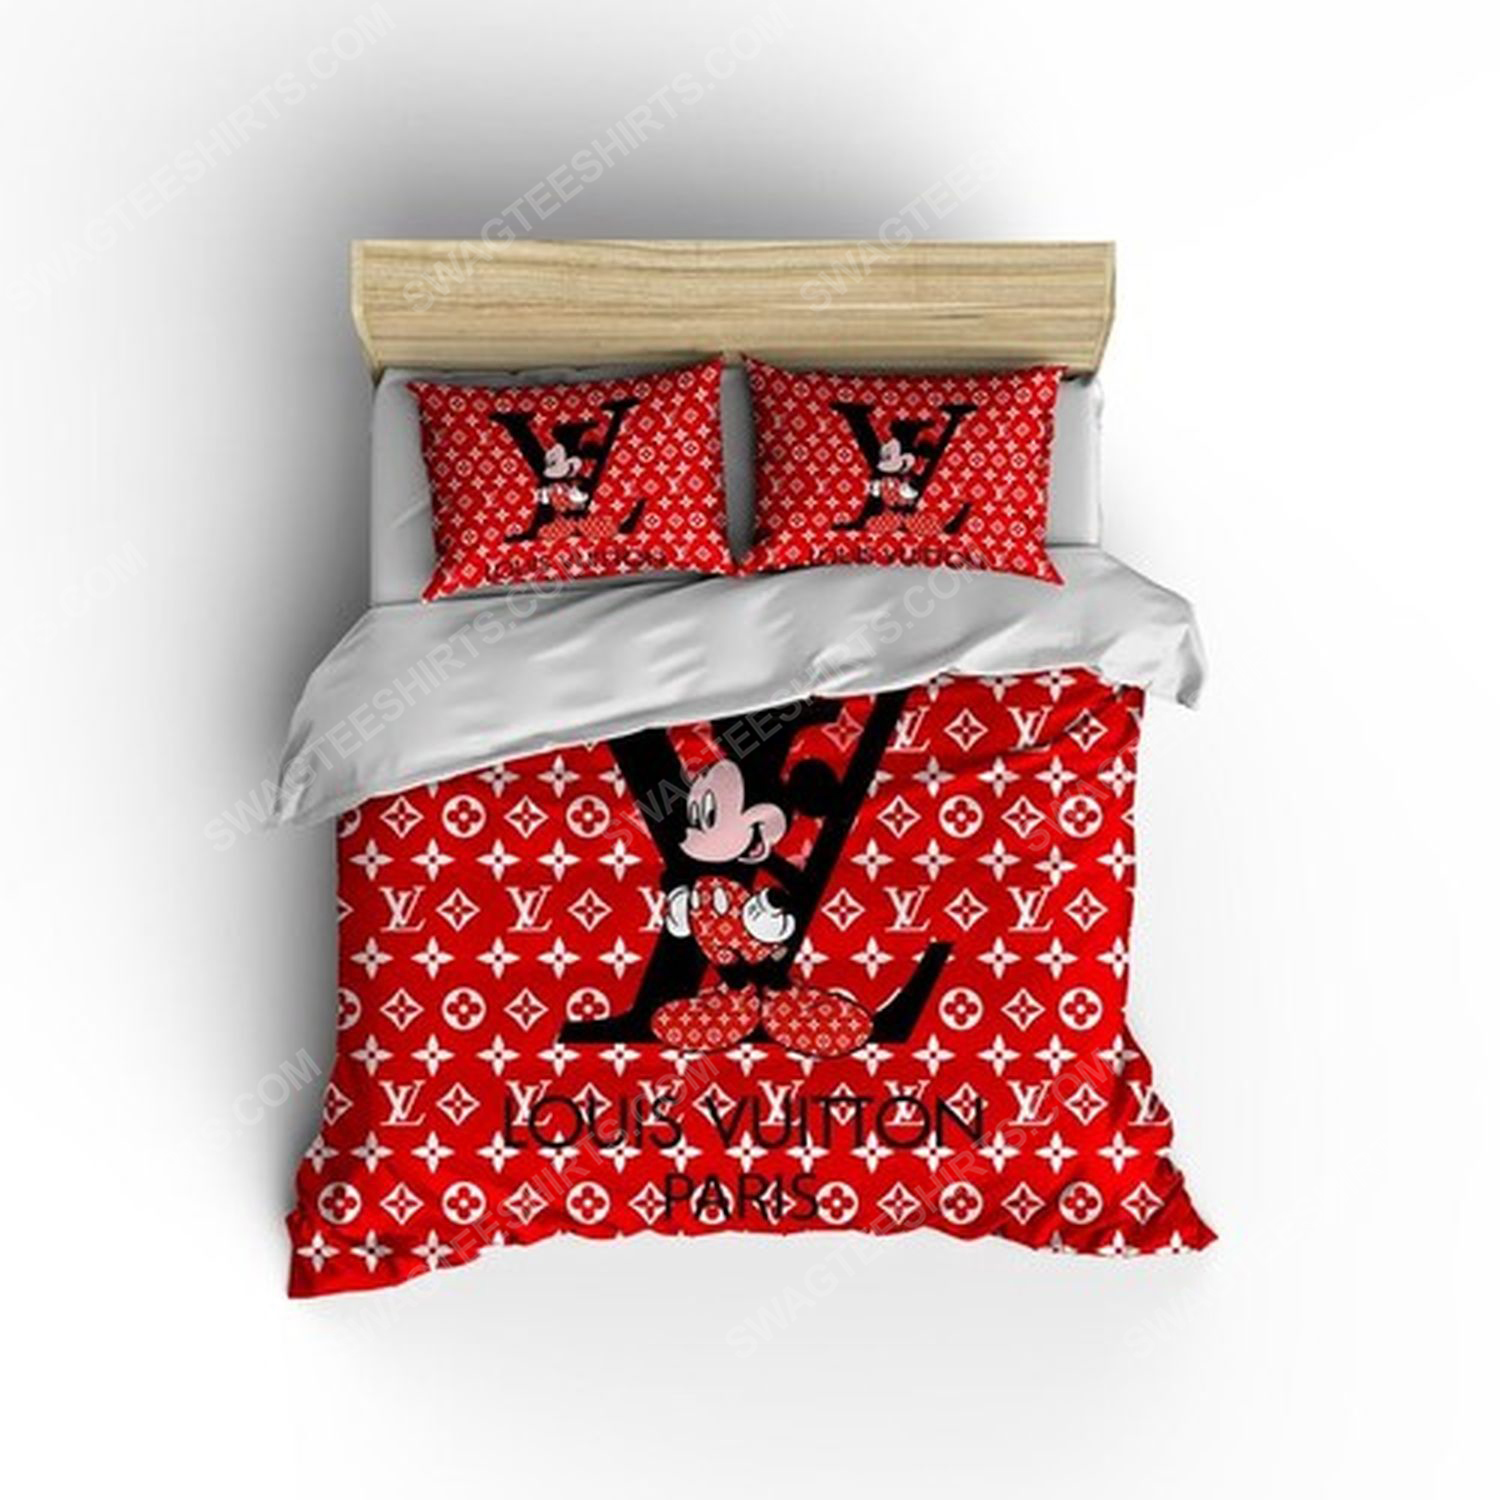 Lv and mickey mouse full print duvet cover bedding set 3